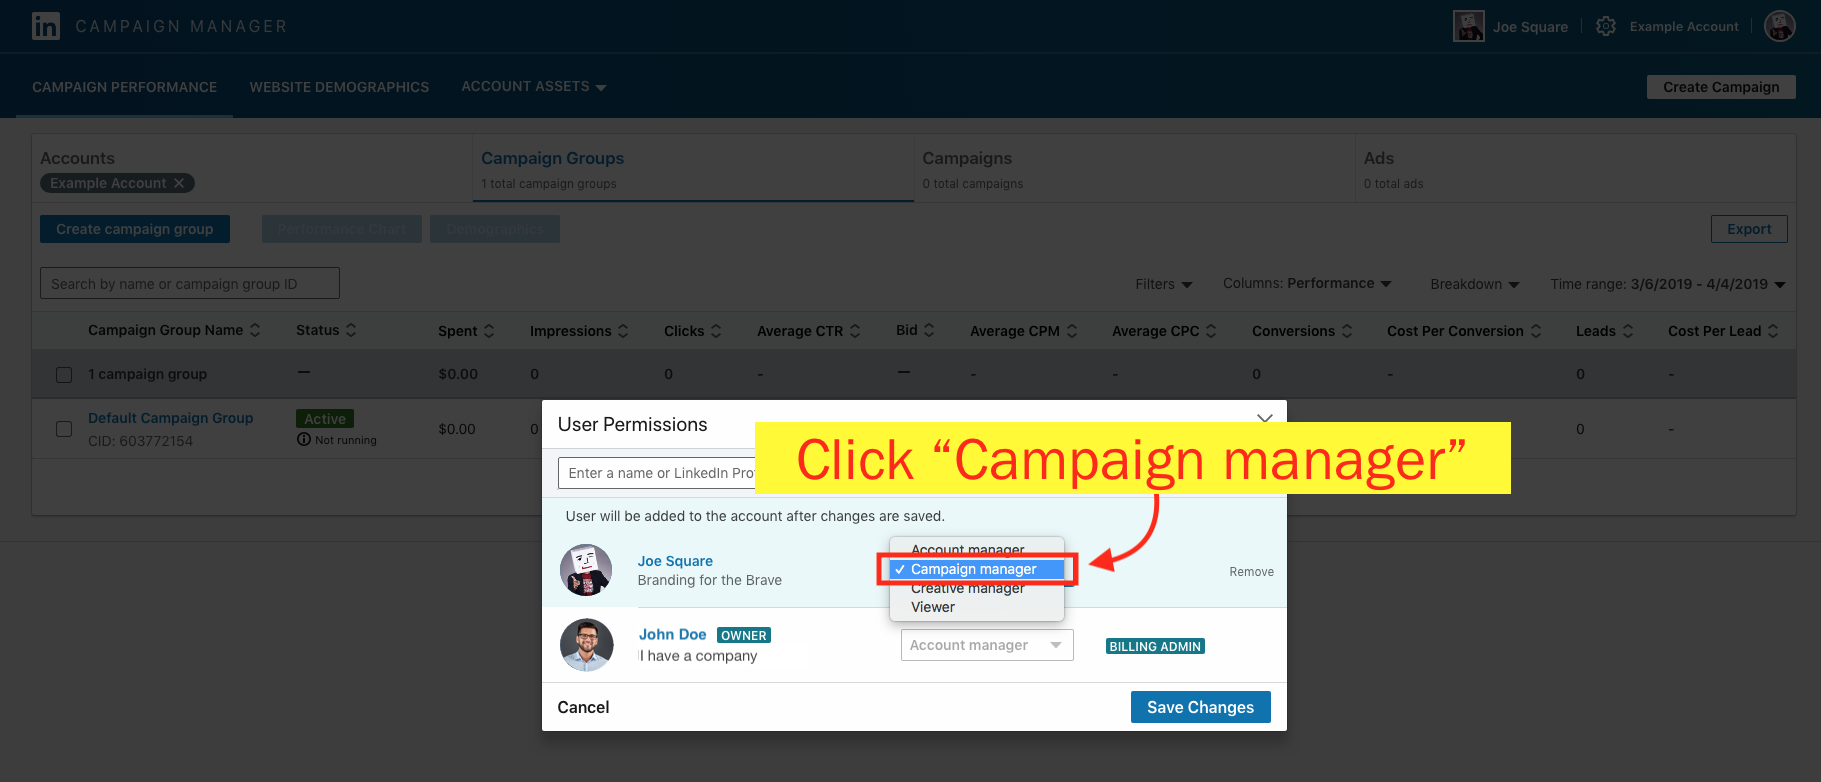 Add a Campaign Manager to Your LinkedIn Ad Account - Step 10 Screenshot